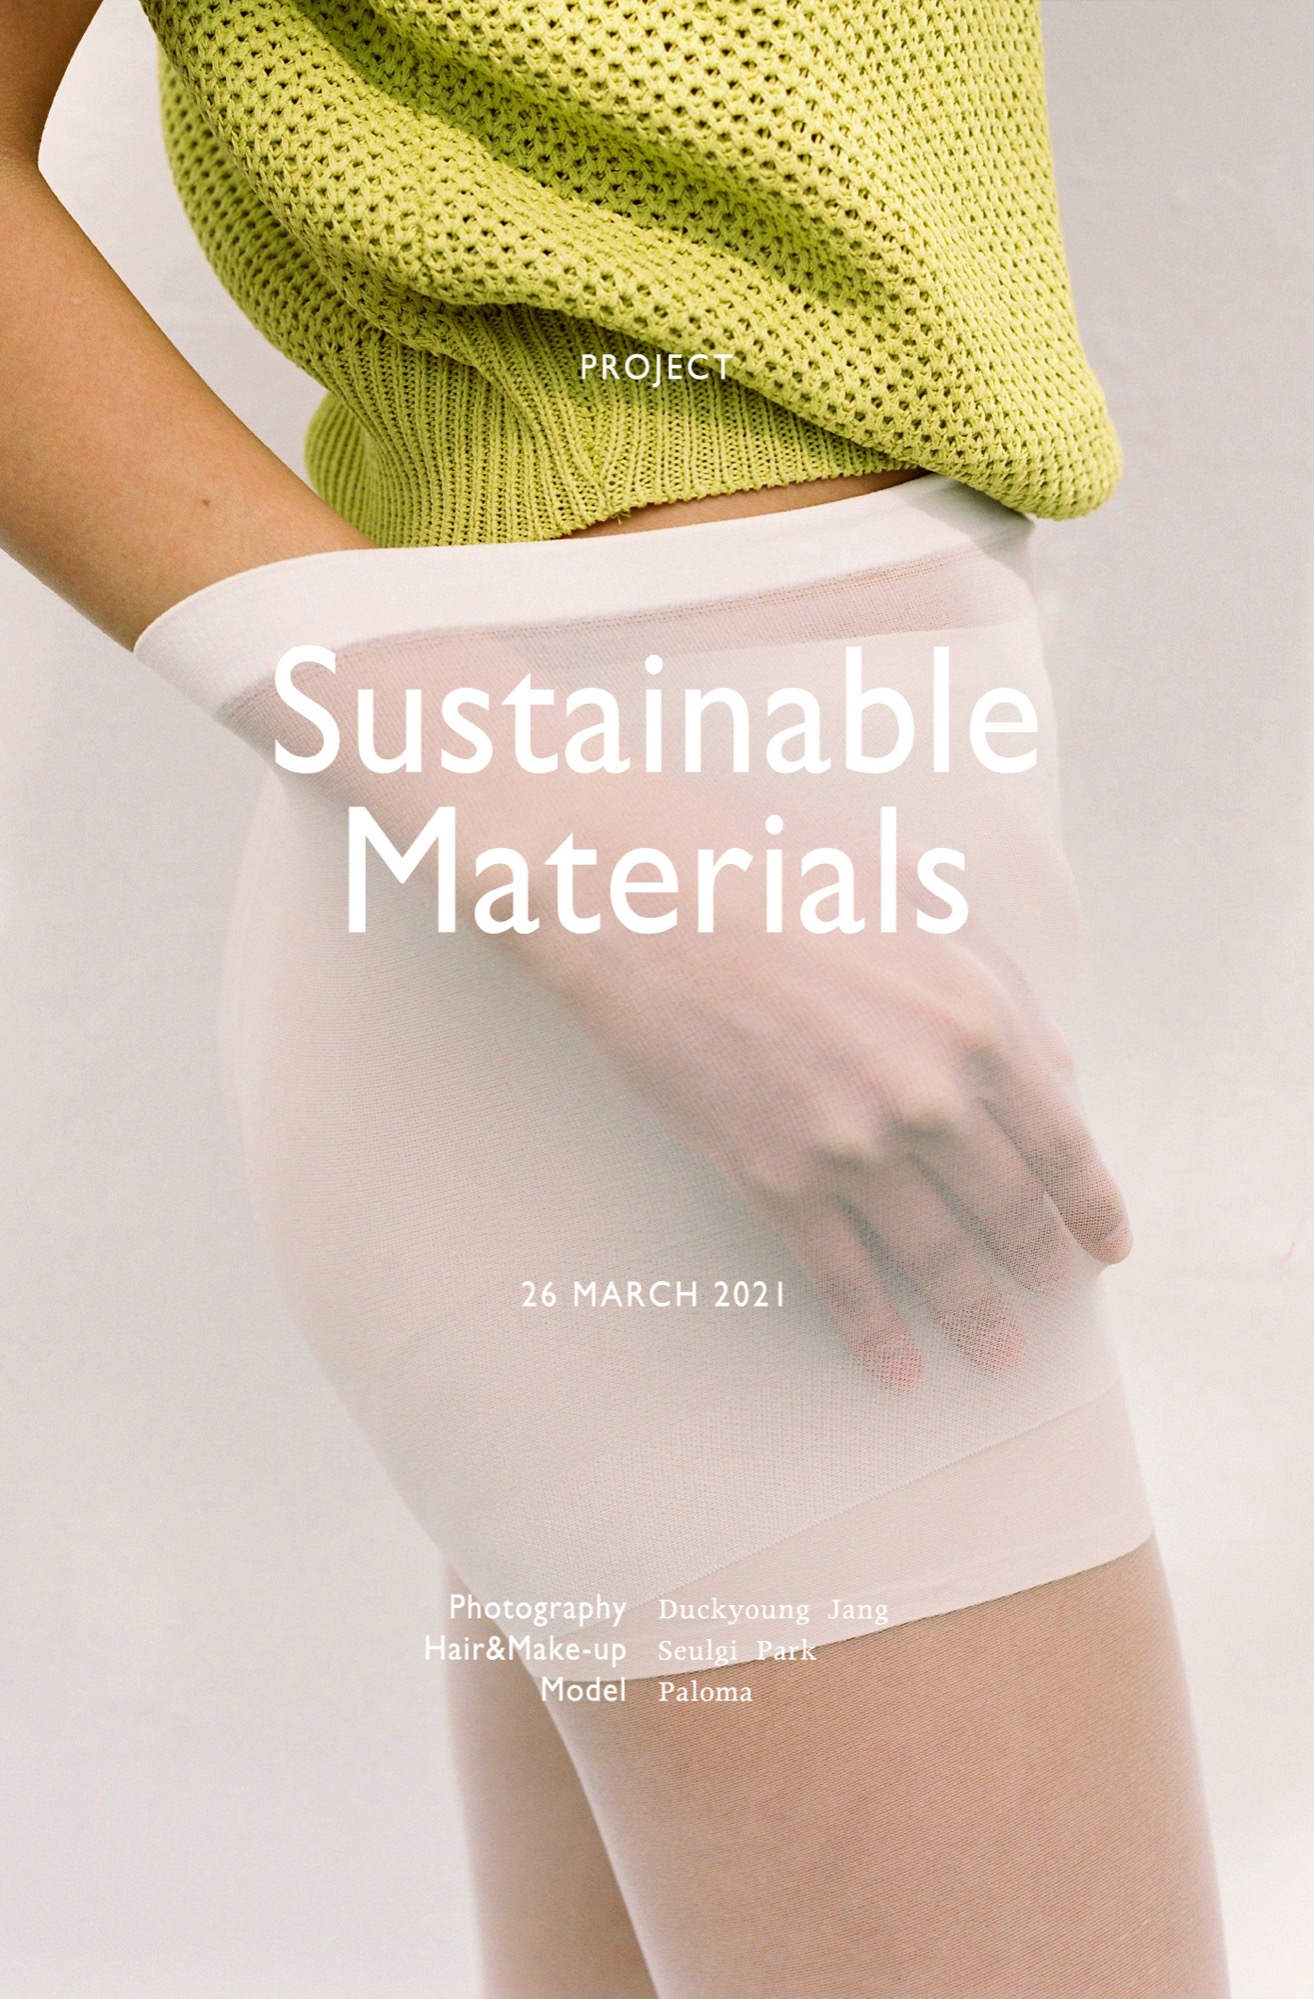 S/S 2021 'Sustainable Materials' with Duckyoung Jang